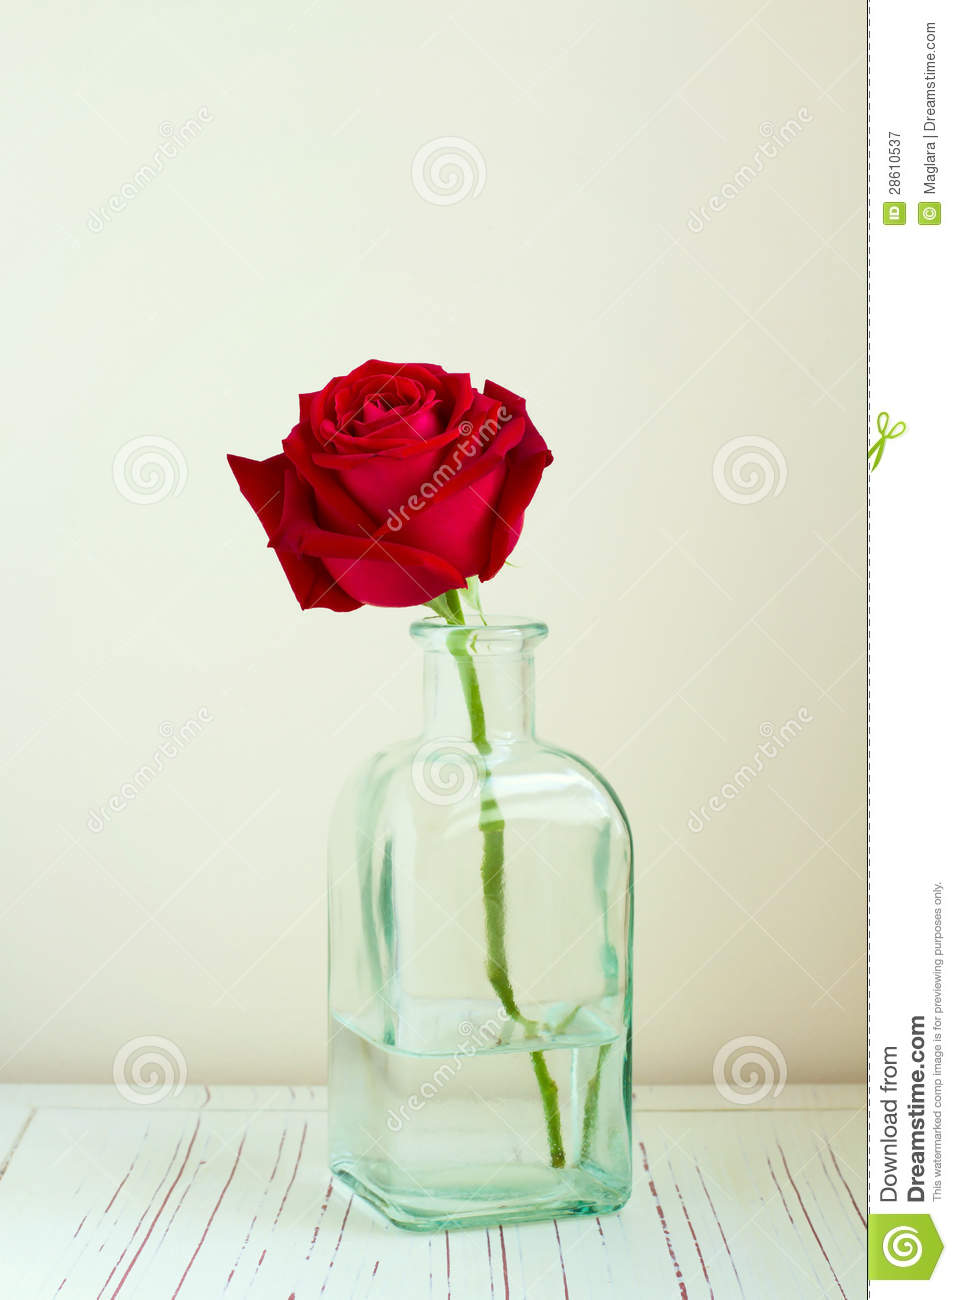 Iphone 6 Holiday Wallpaper Red Rose In Bottle Stock Image Image Of Wall Space